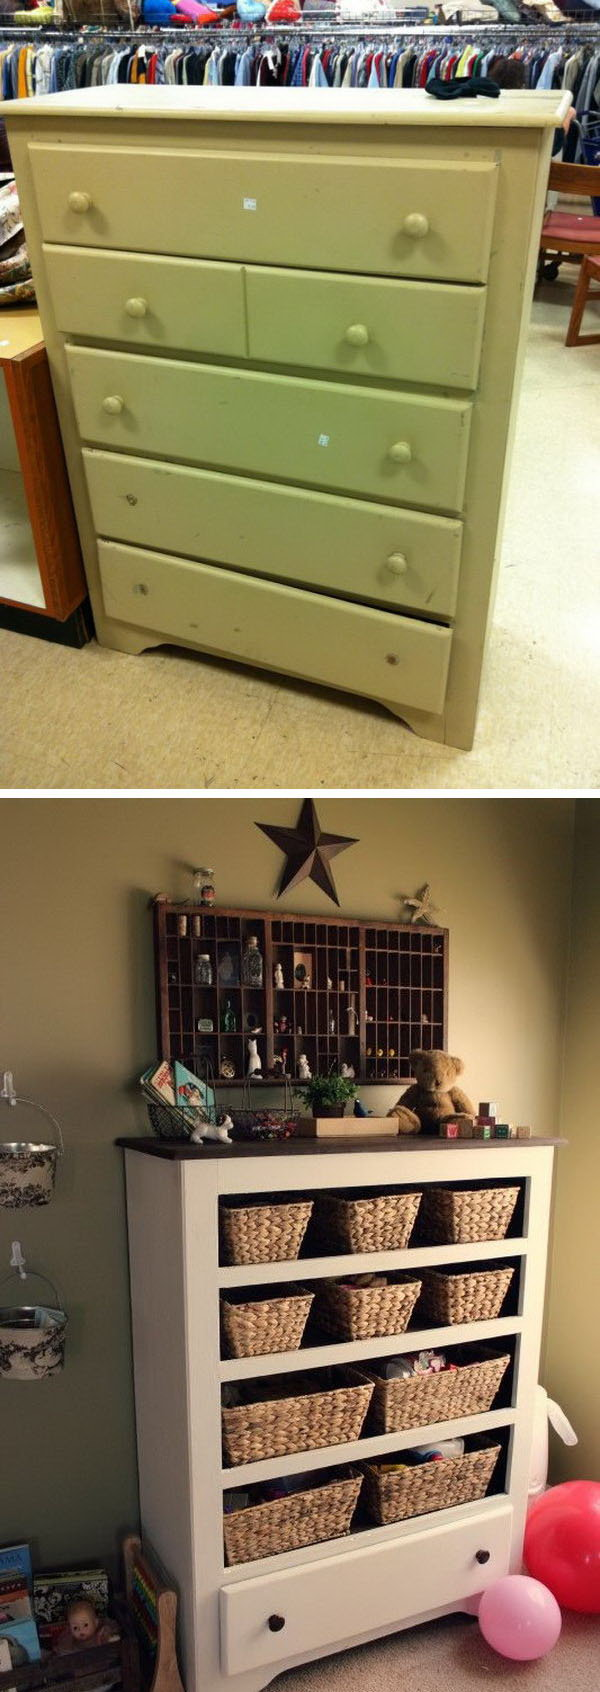 DIY Funny Functional Storage Or Craft Supplies From A $9.50 Thrift Store  Drawer